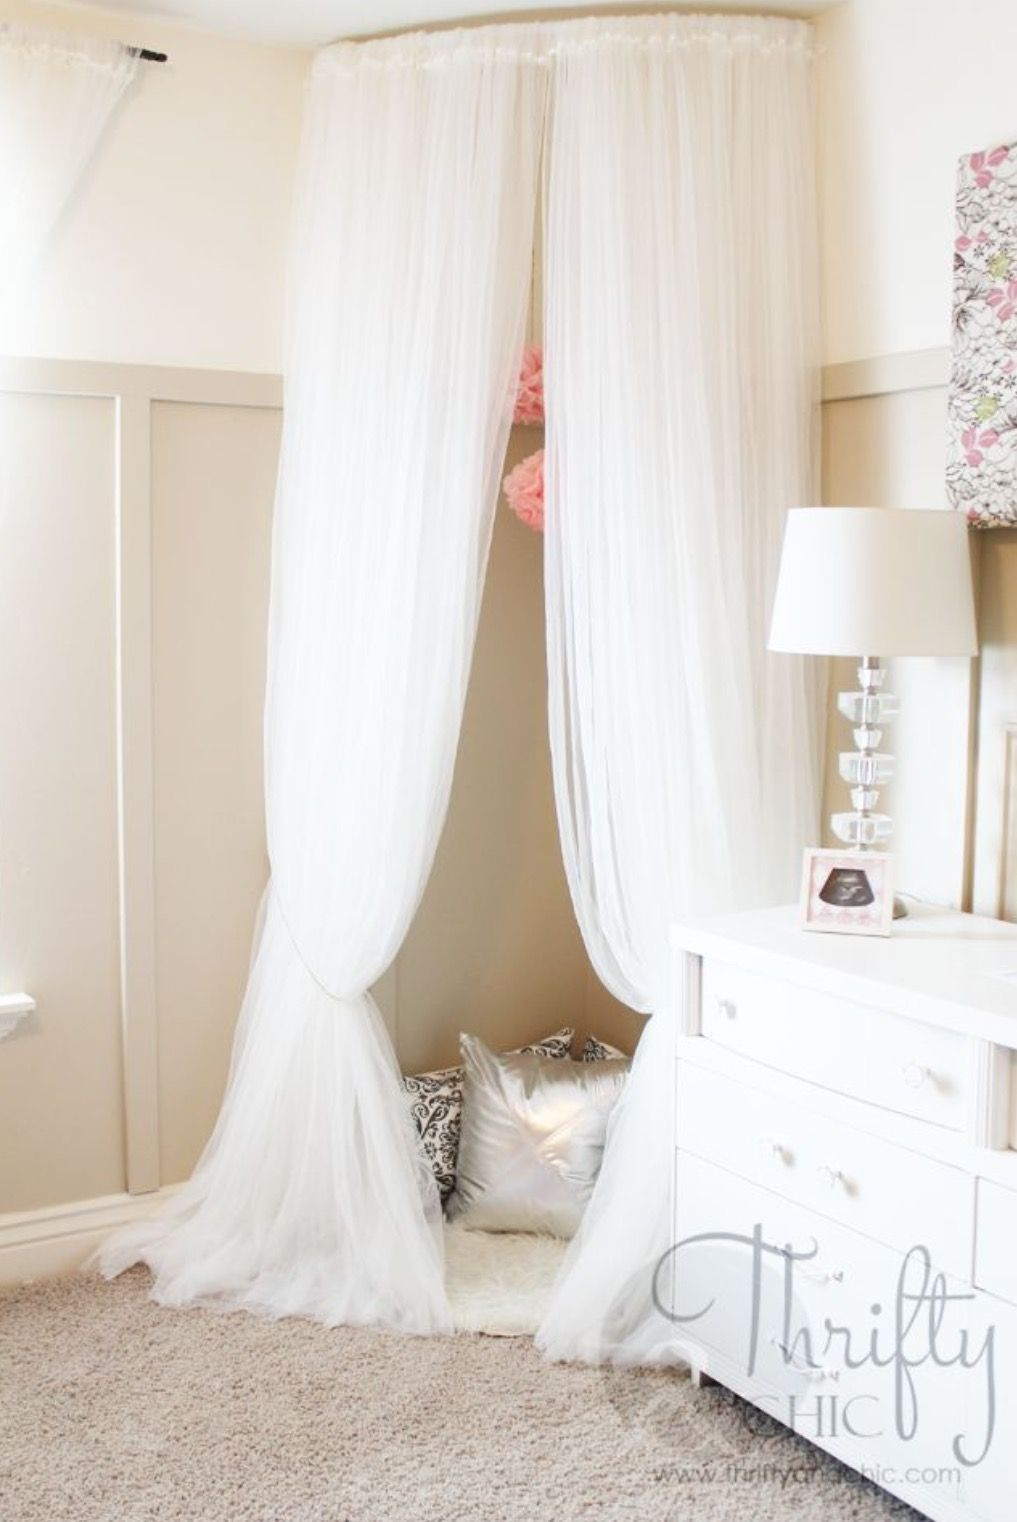 Pin On Decor Playroom